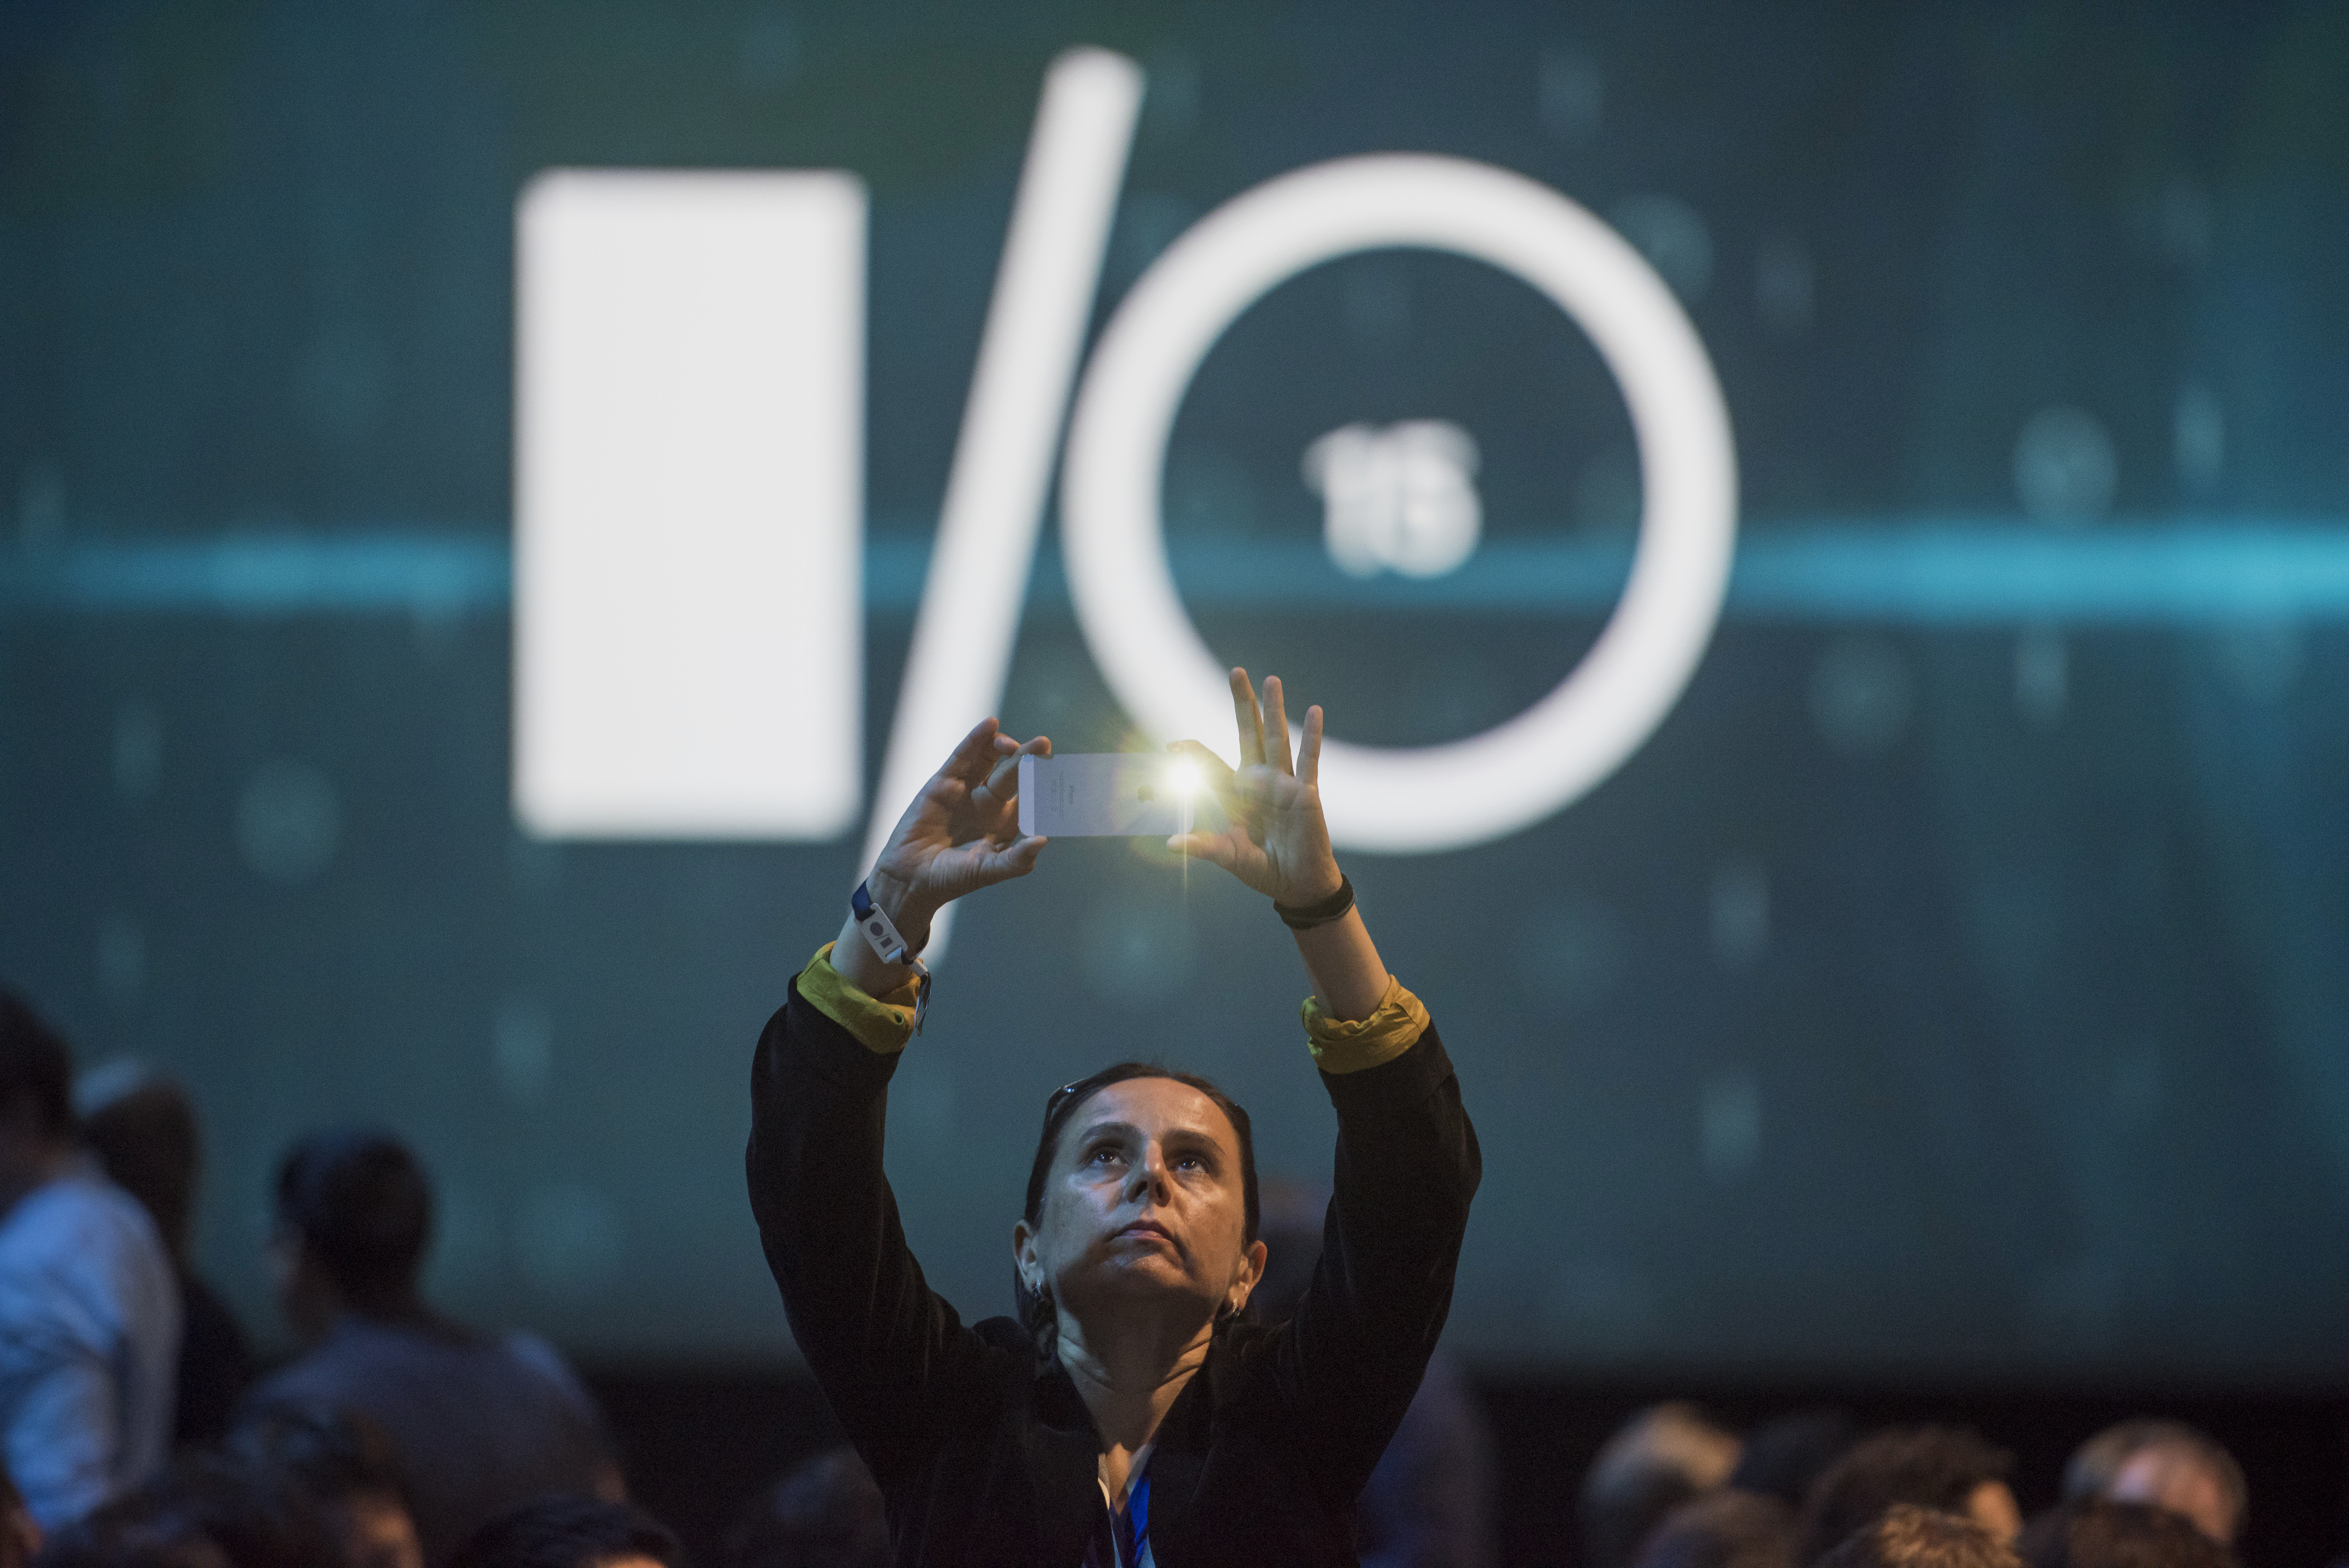 An attendee takes a photograph prior to the Google I/O Annual Developers Conference in San Francisco, California, U.S., on Thursday, May 28, 2014. Google Inc. executives are taking the stage this week to talk about a plethora of new technologies, including automobiles, home automation, digital TV, Web-connected devices and a new version of Android. Photographer: David Paul Morris/Bloomberg